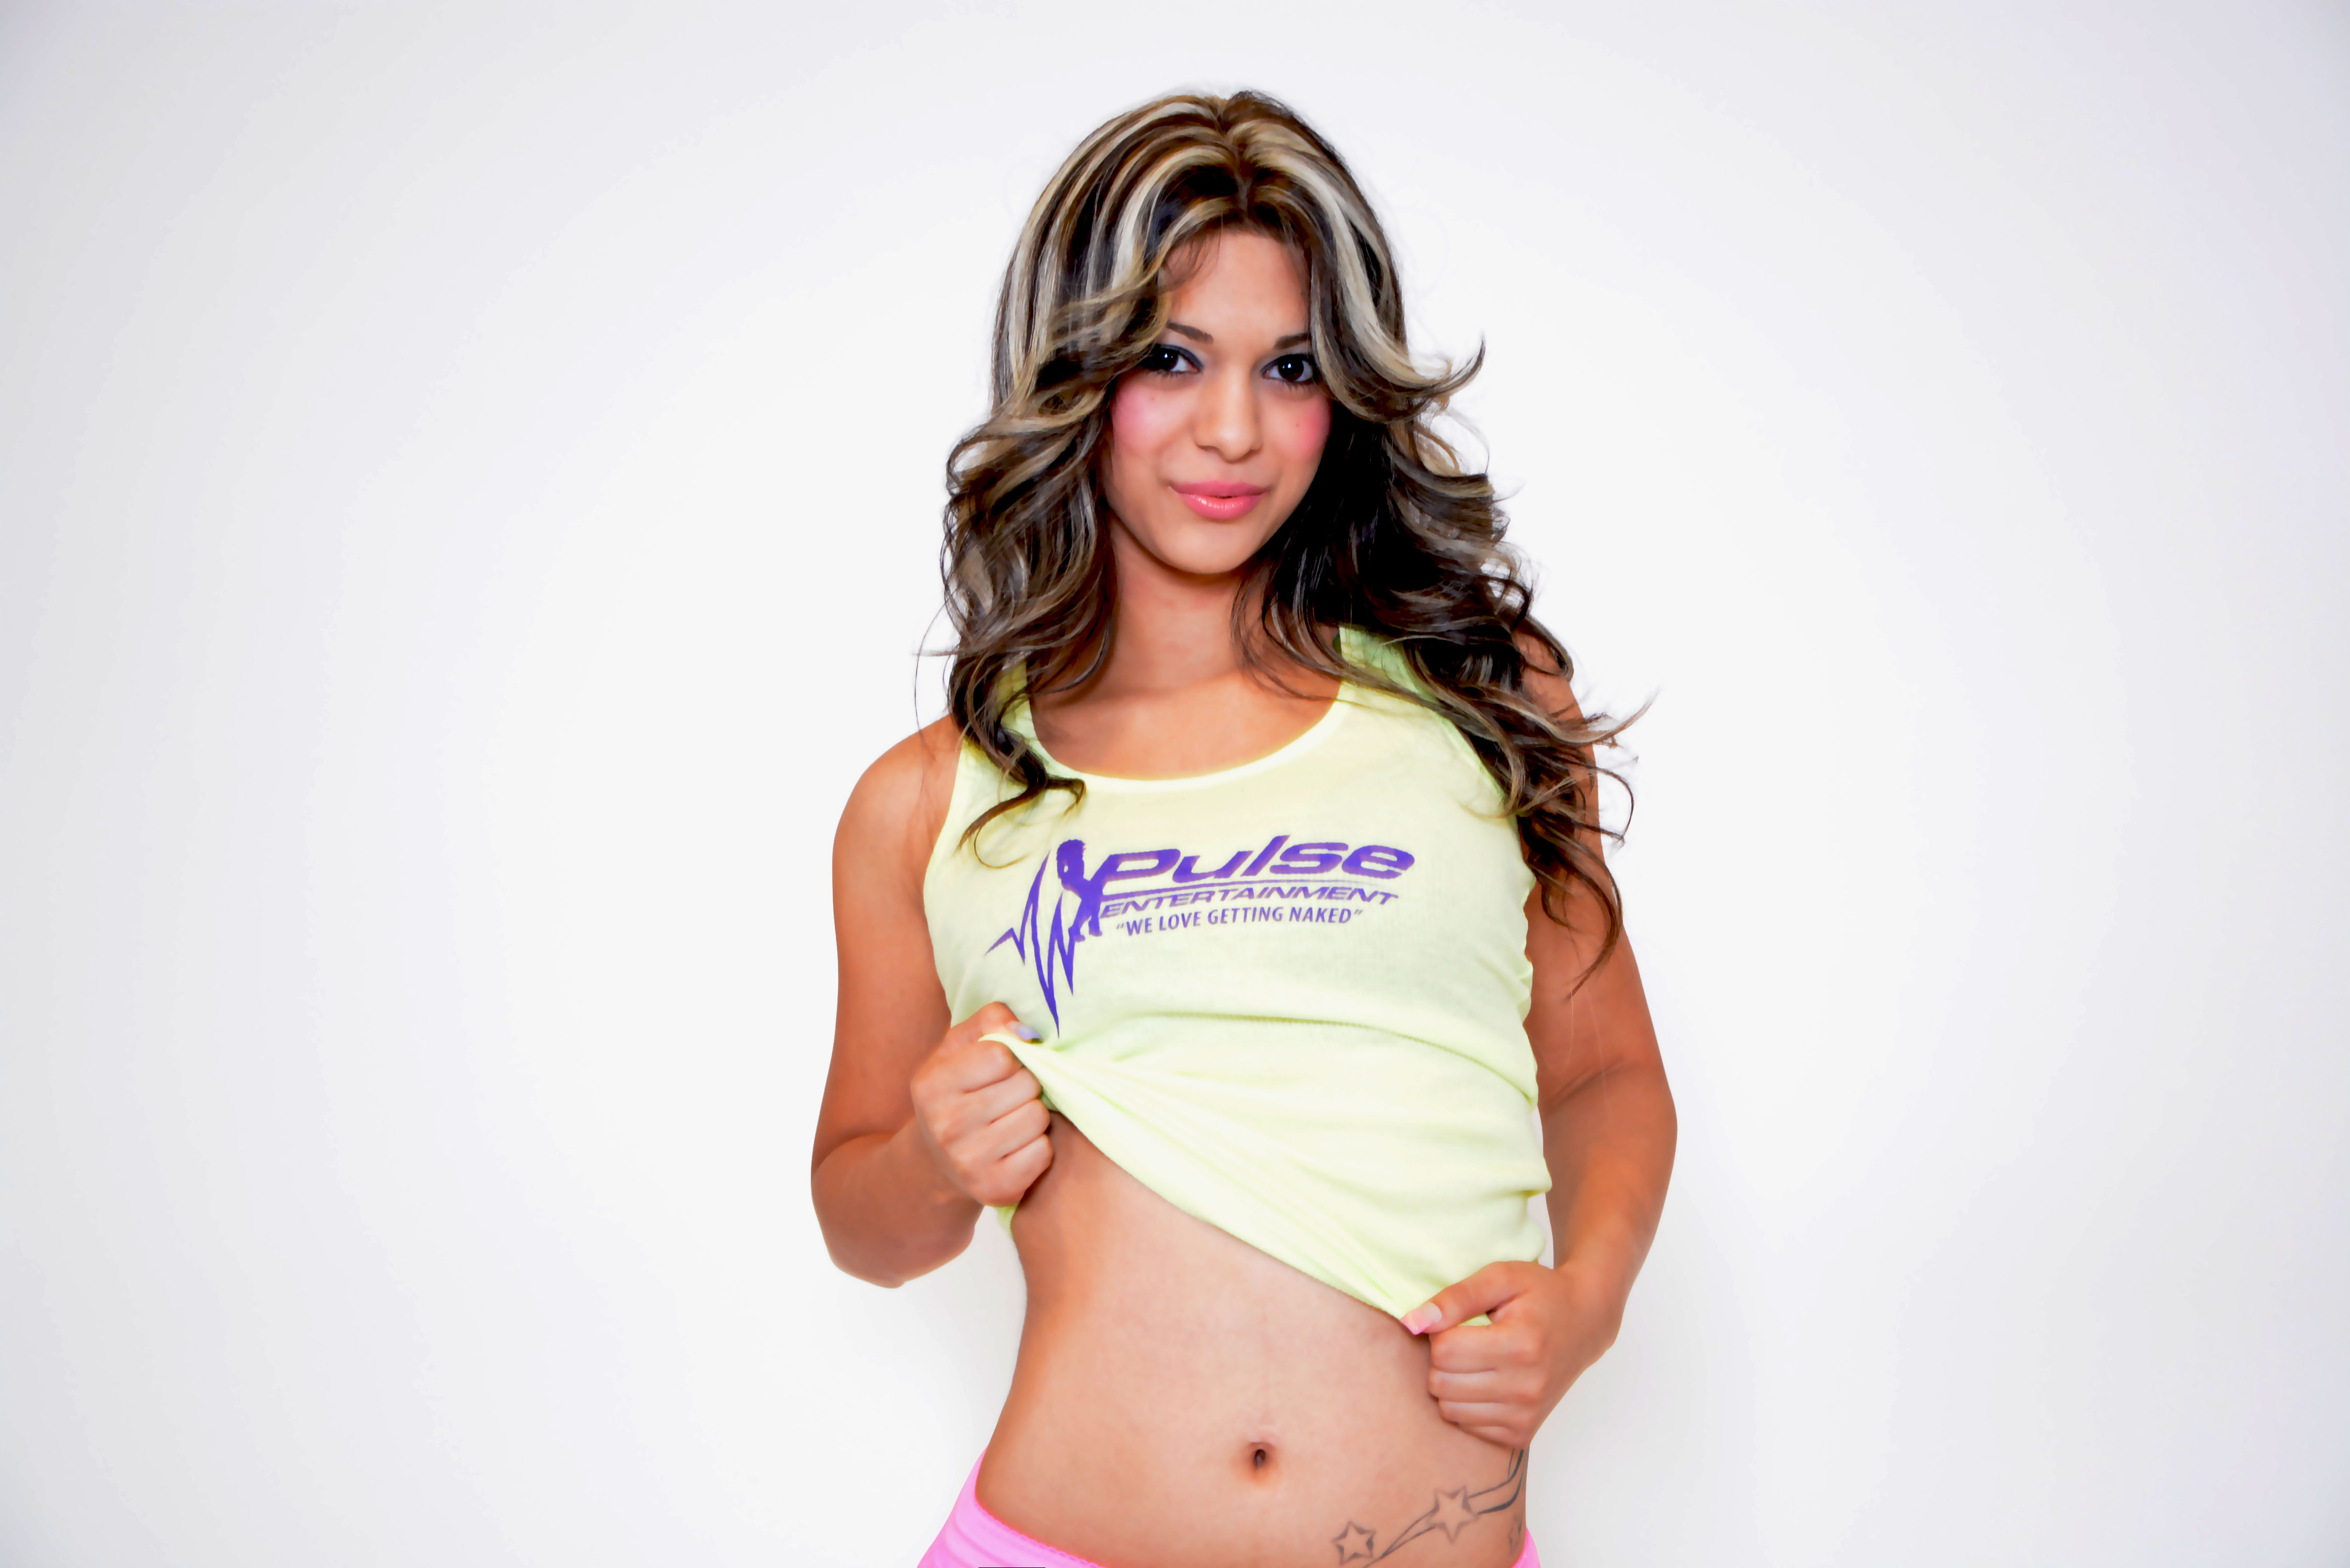 Pulse Entertainment voted #1 Las Vegas private party hotel strippers for hire. Outcall exotic dancer